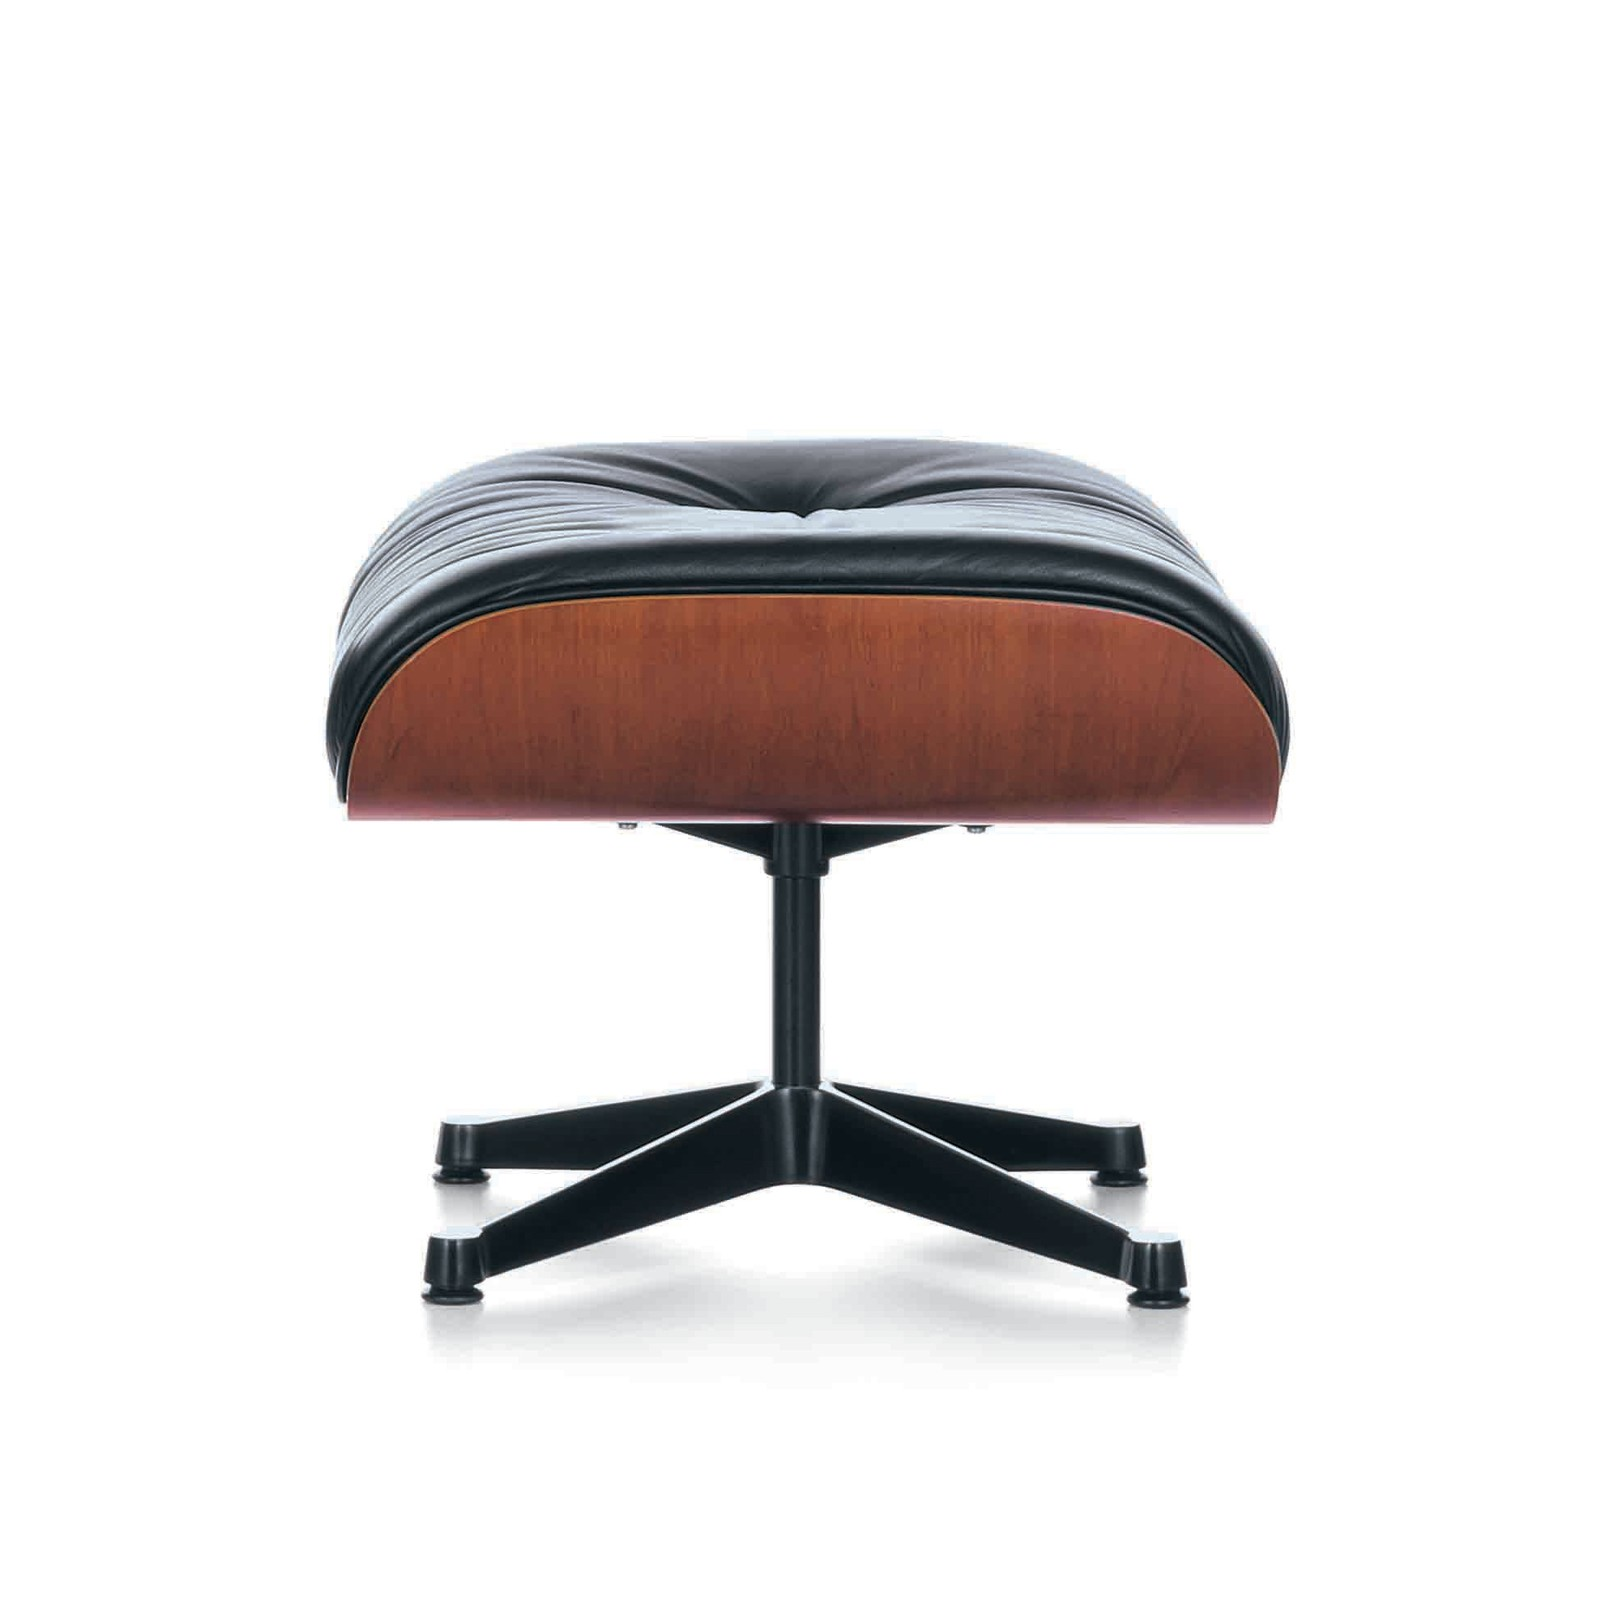 Eames Ottoman Chromed, Cherry, 04 glides for carpet, Leather Grand 72 snow